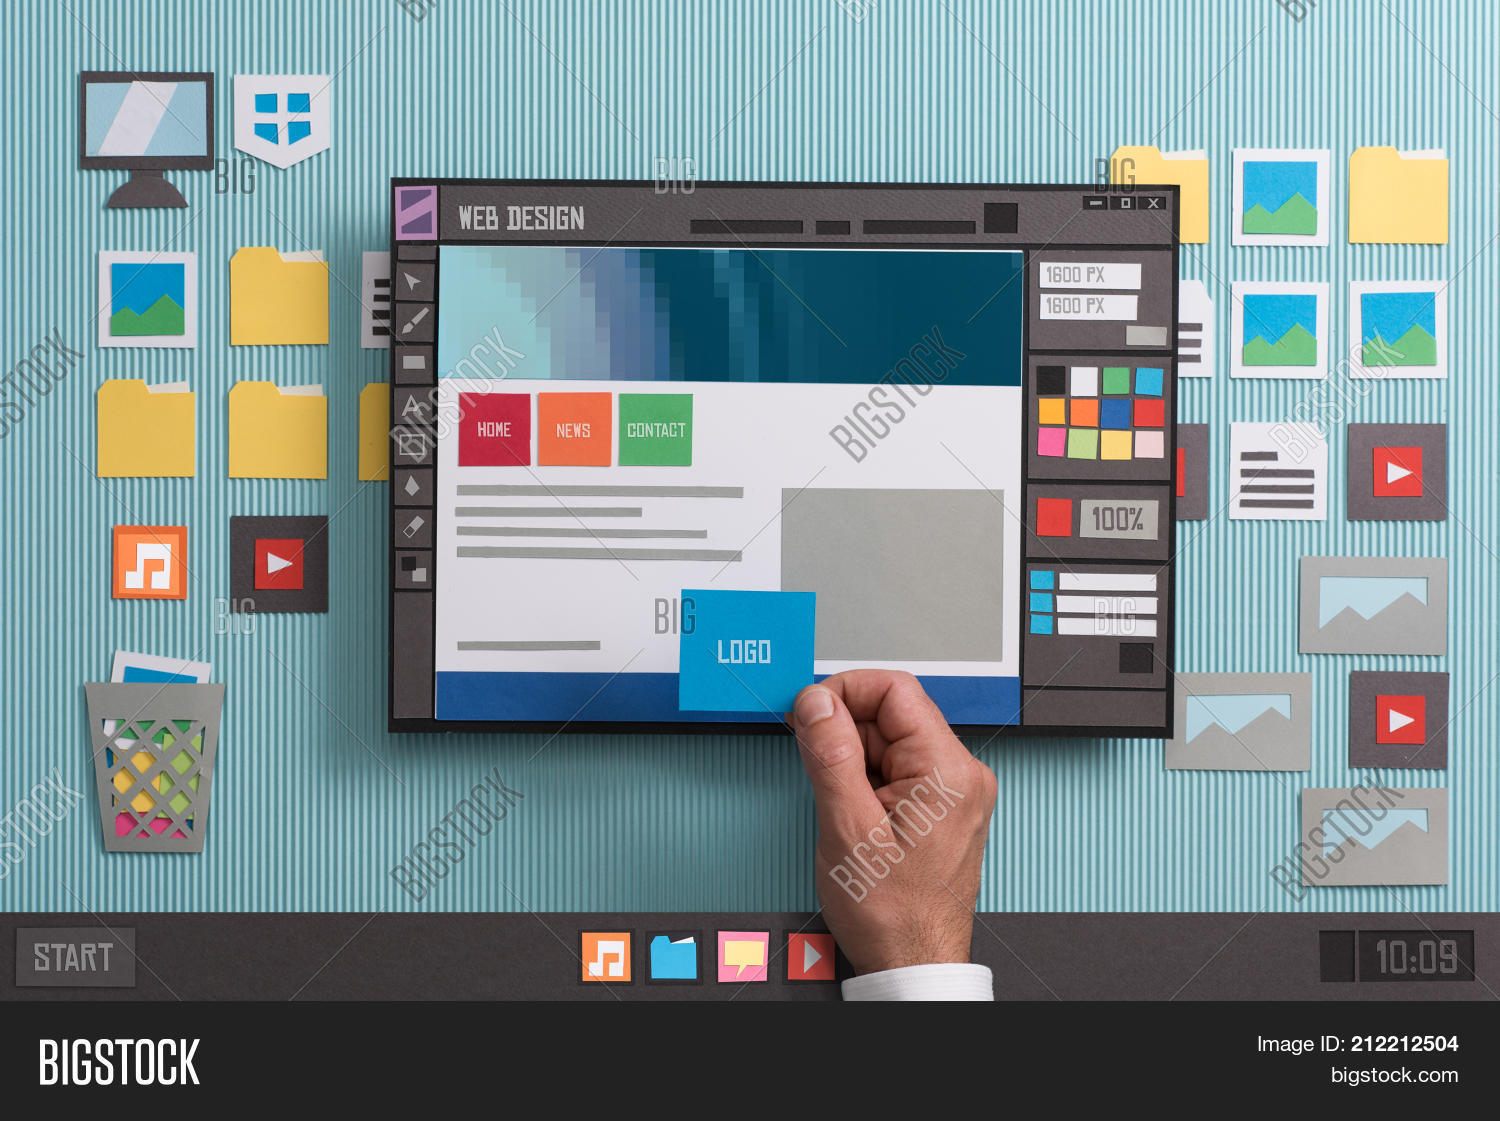 Web Design Software Image Photo Free Trial Bigstock